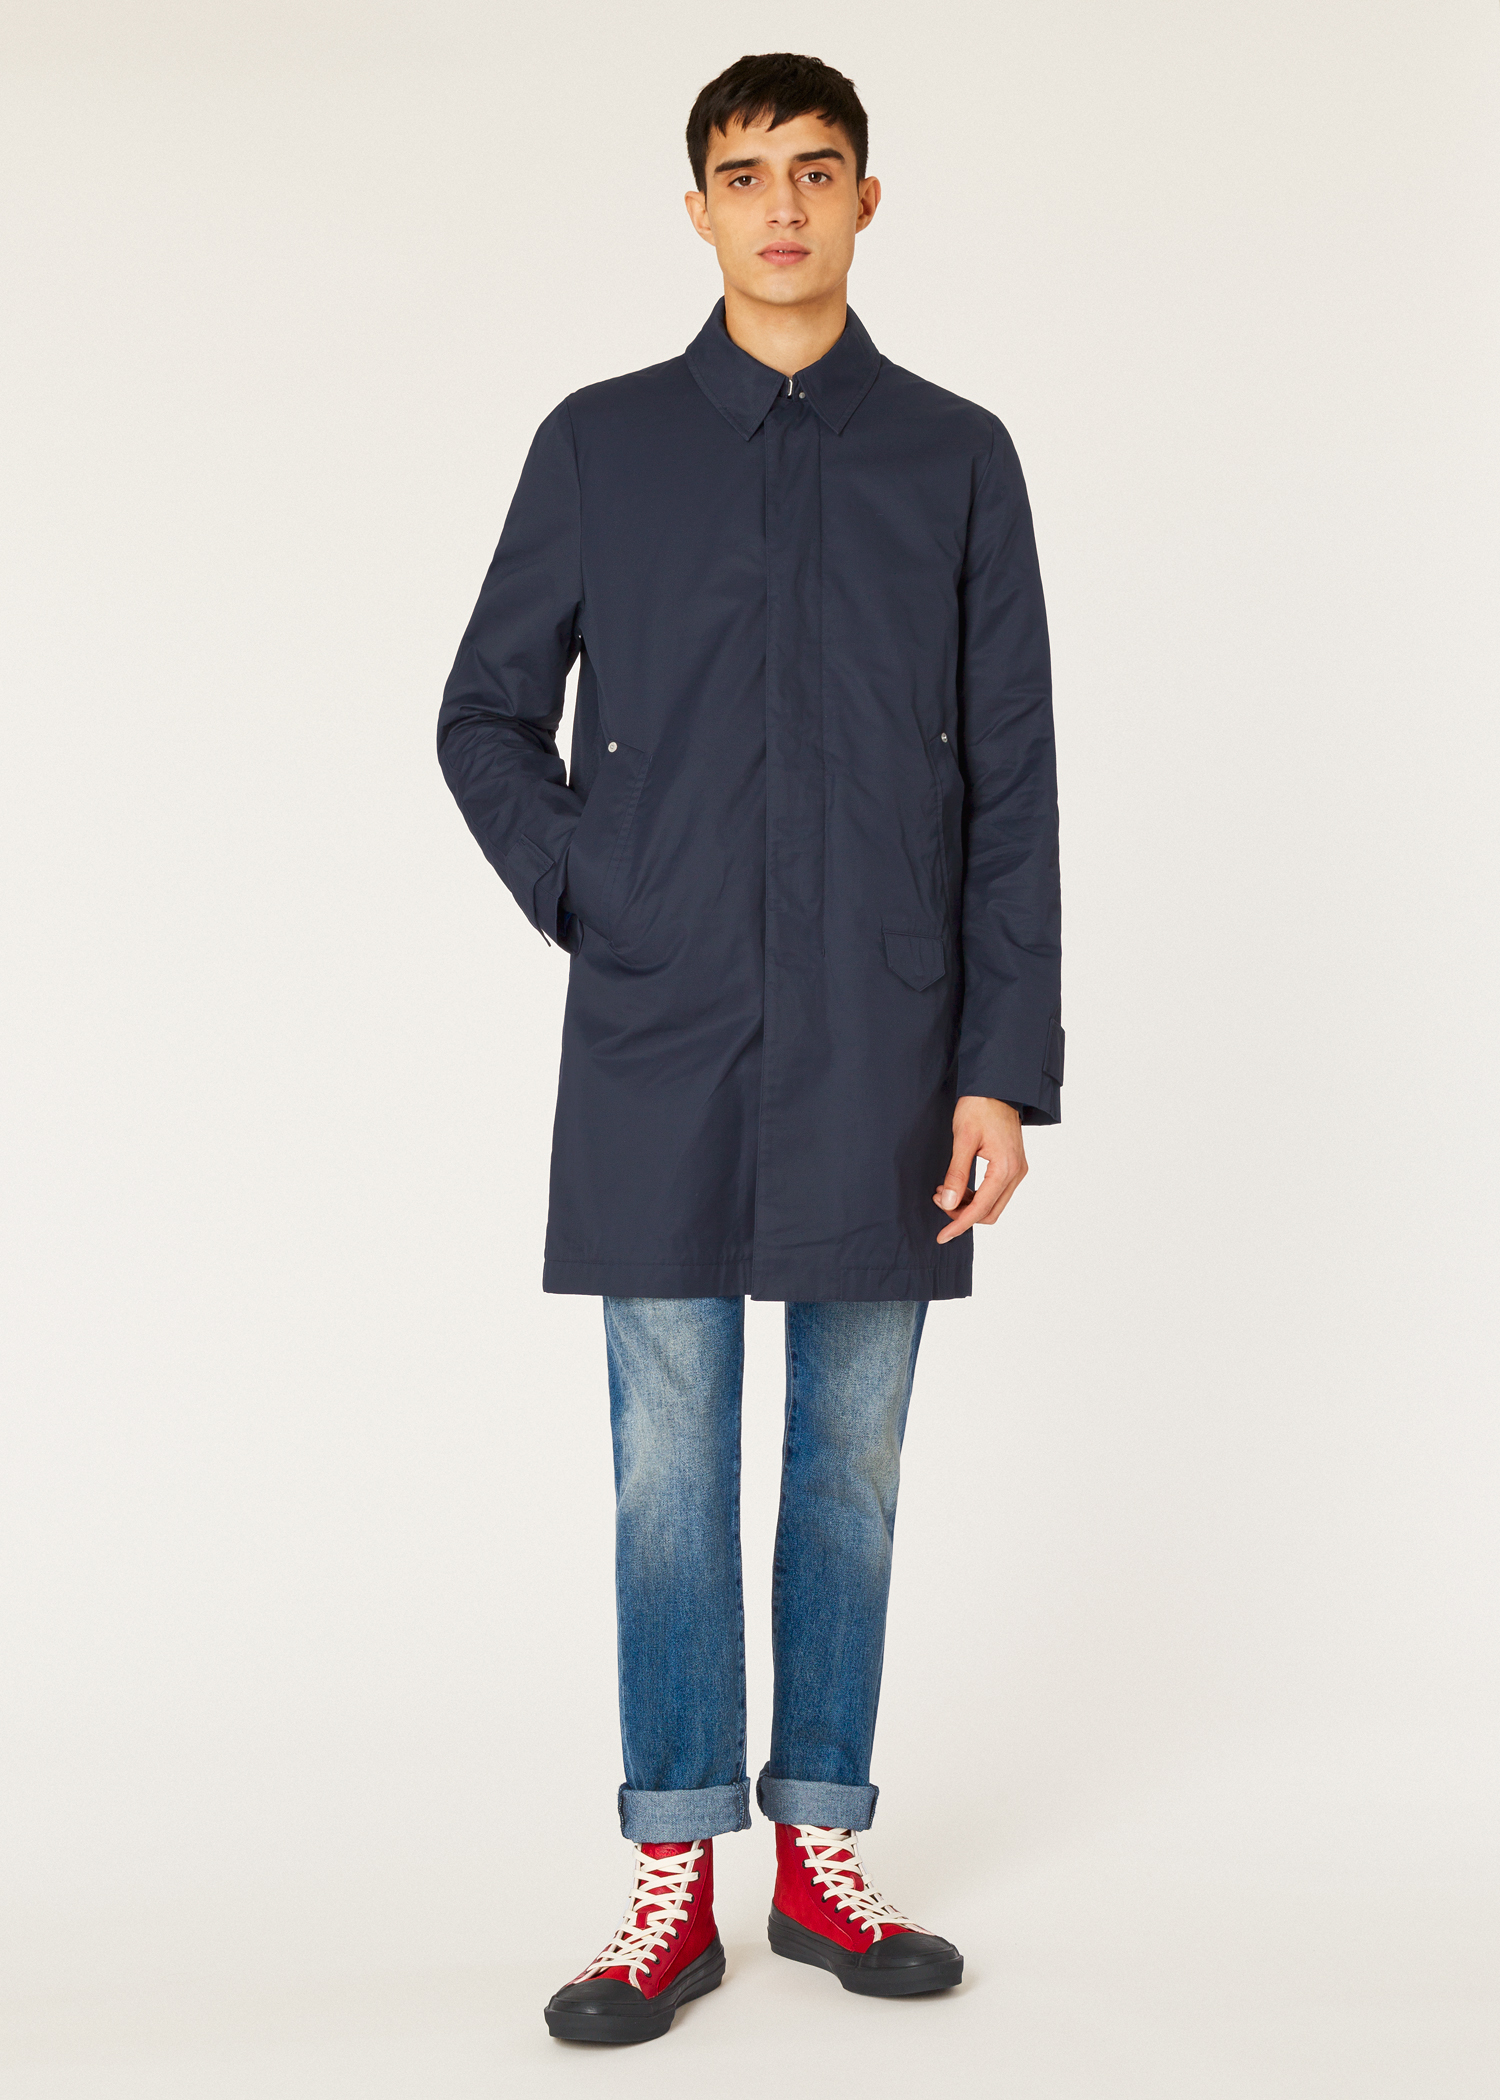 05b9304f0685d Model front view- Paul Smith Men's Navy Cotton-Blend Unlined 2-In-